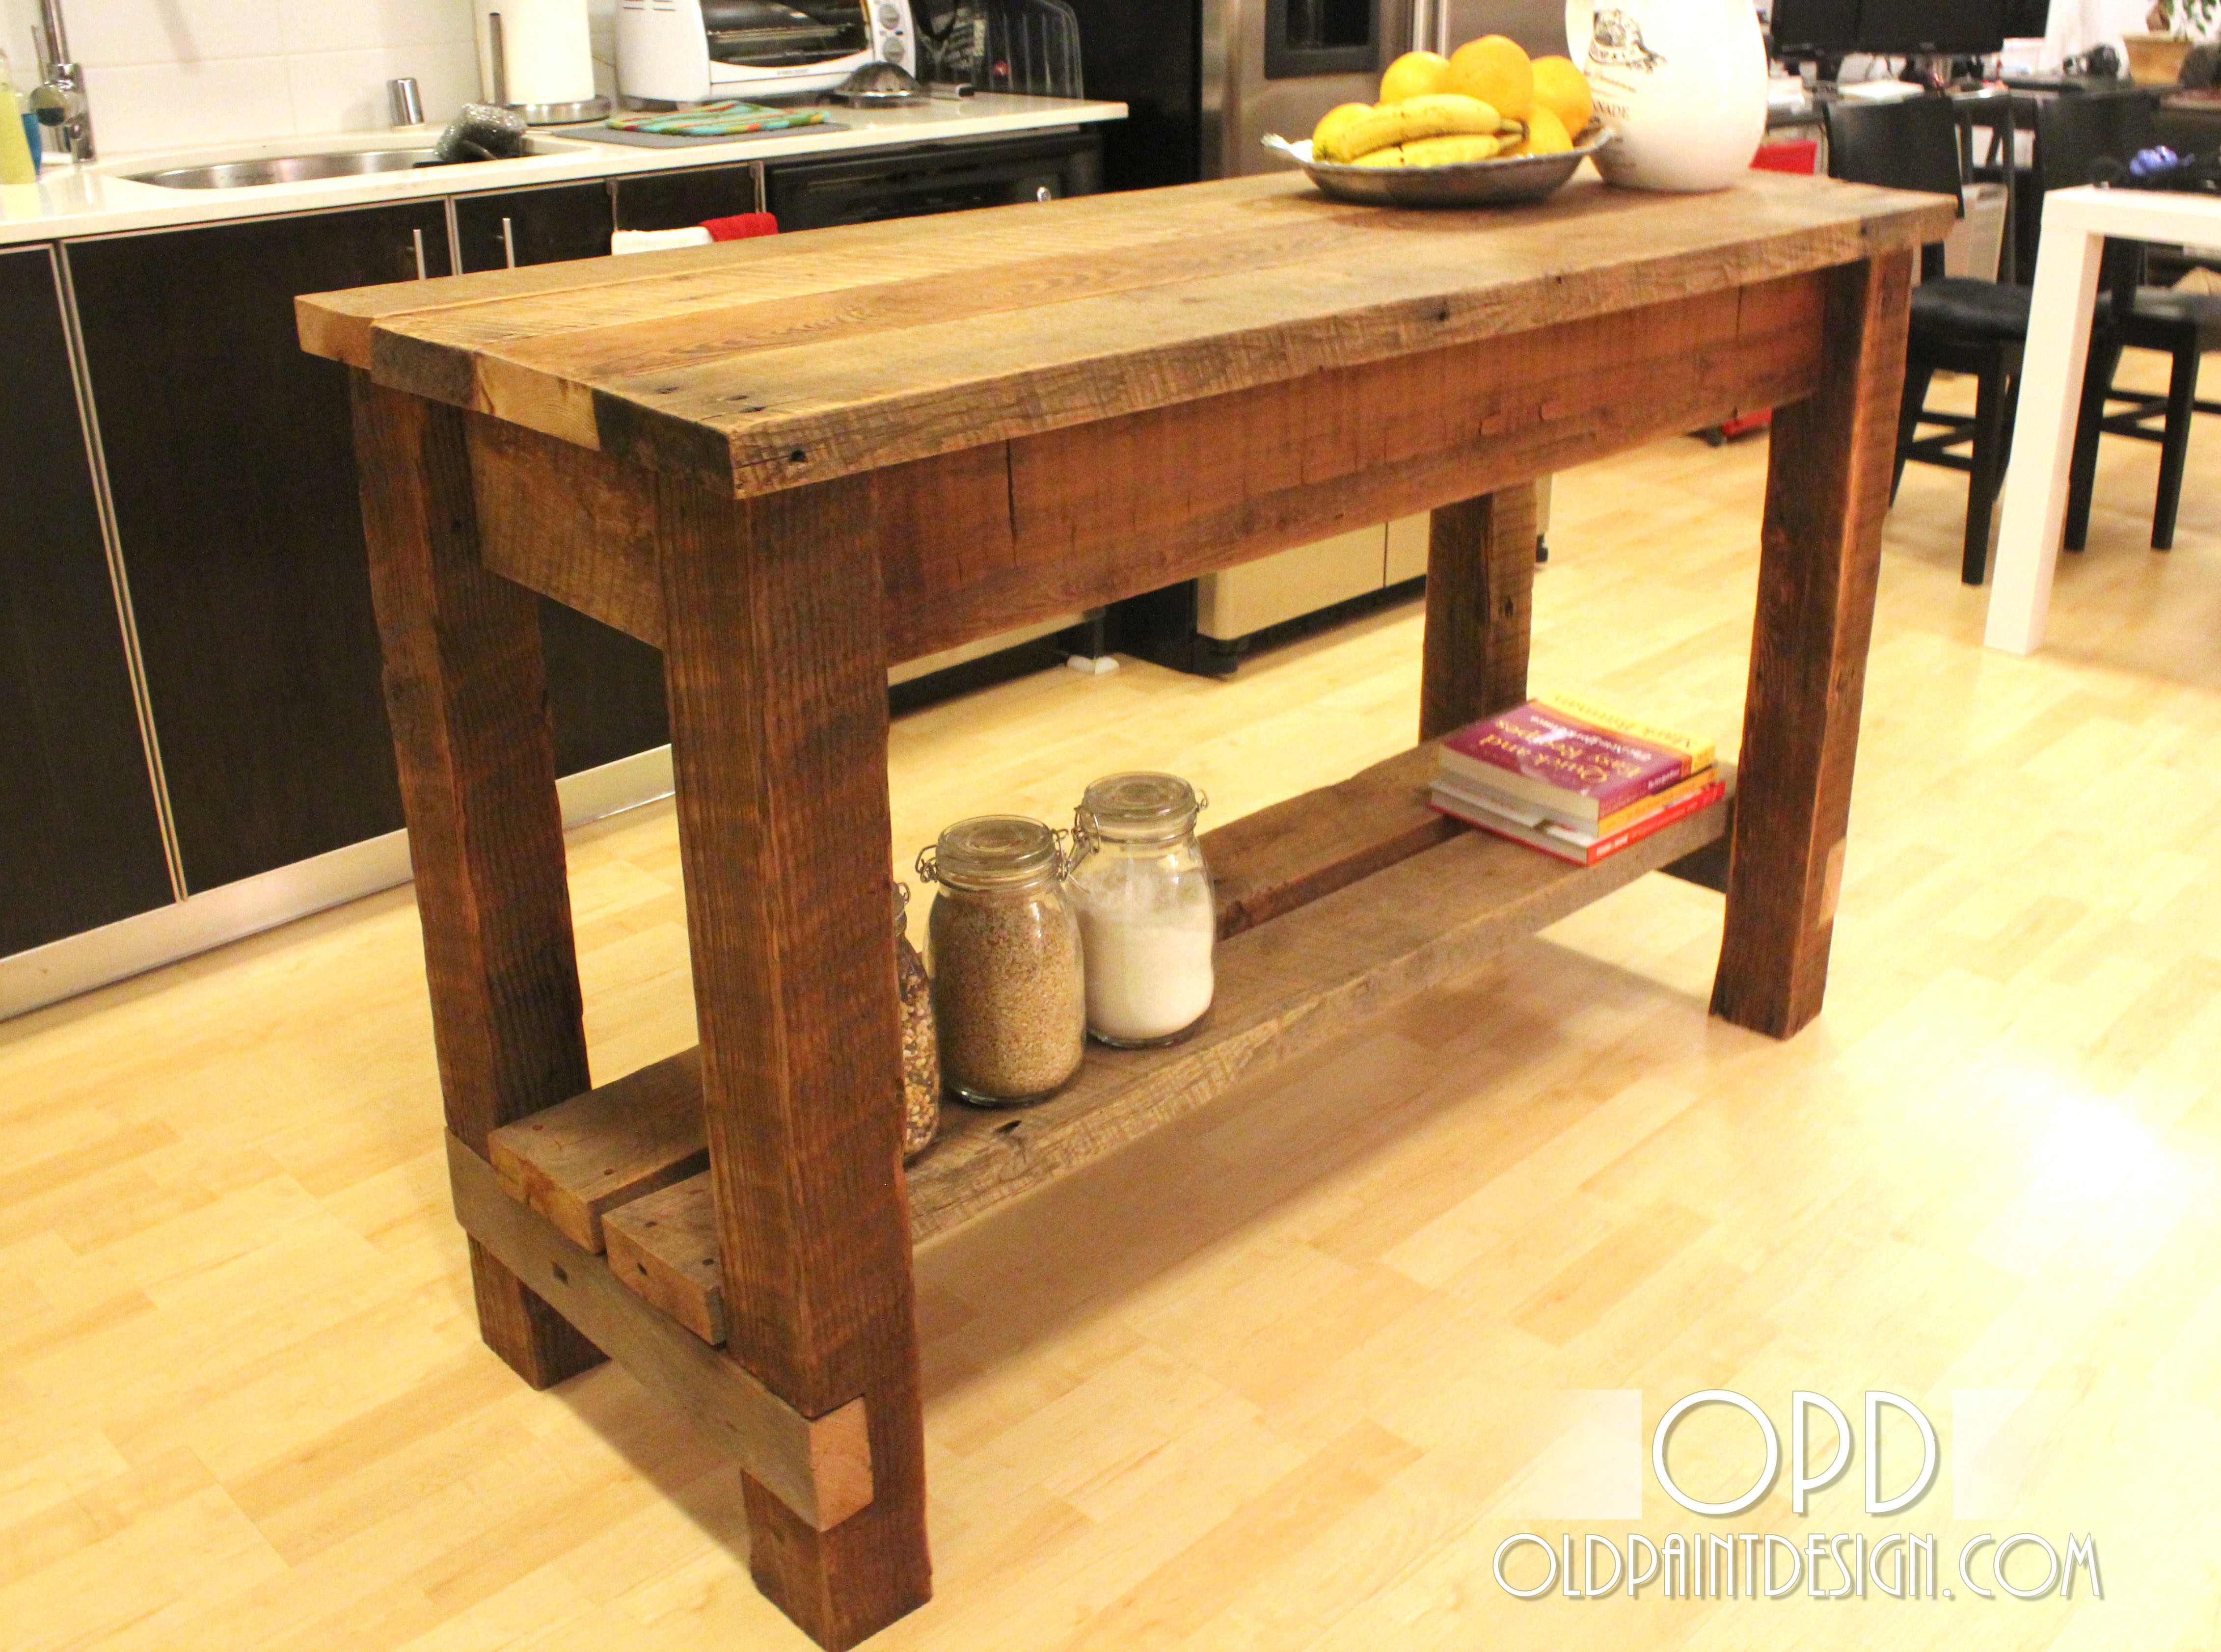 Are You Looking For Some DIY Ideas And Plans To Create A New Kitchen Island?  Then You Have To Check Out Todayu0027s Collection Of Kitchen Island DIY  Projects!